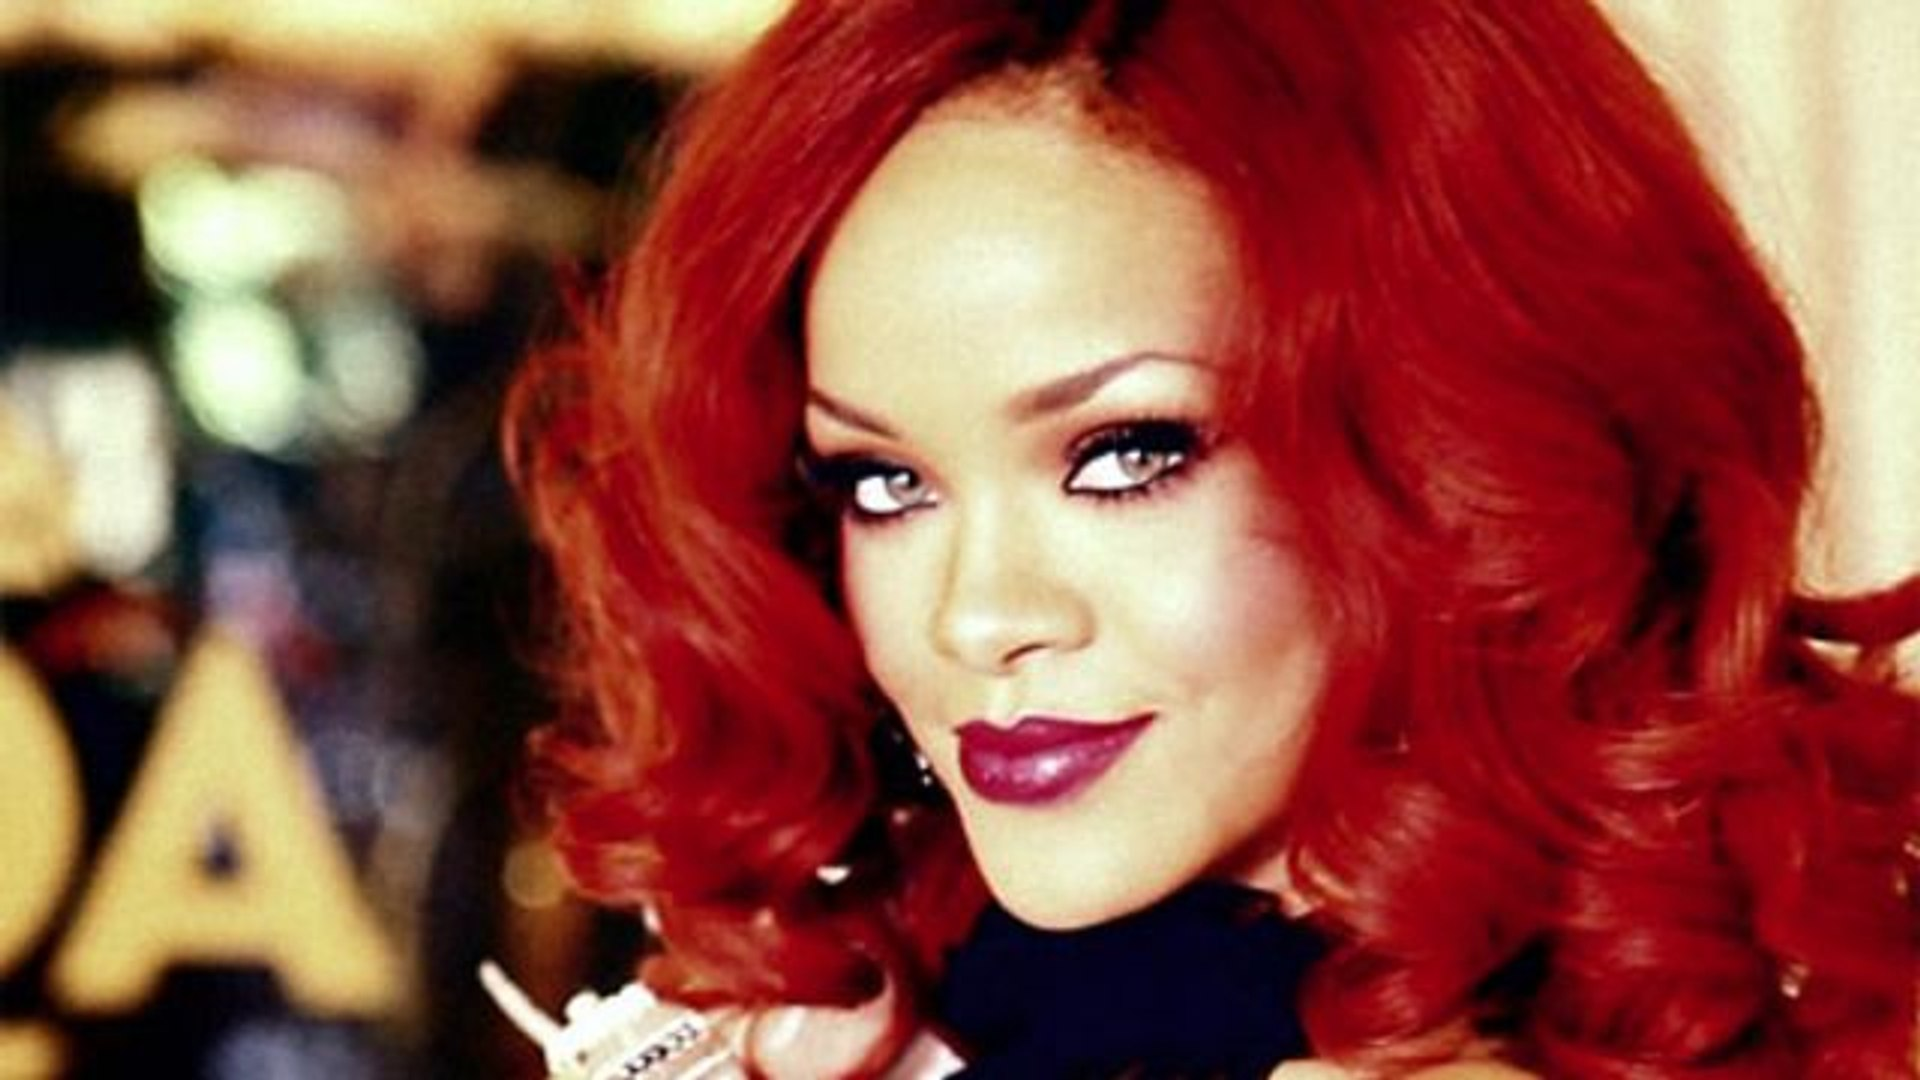 Glamour Cover Shoots - Rihanna Video: Go Behind the Scenes at Her Glamour September 2011 Cover Shoot